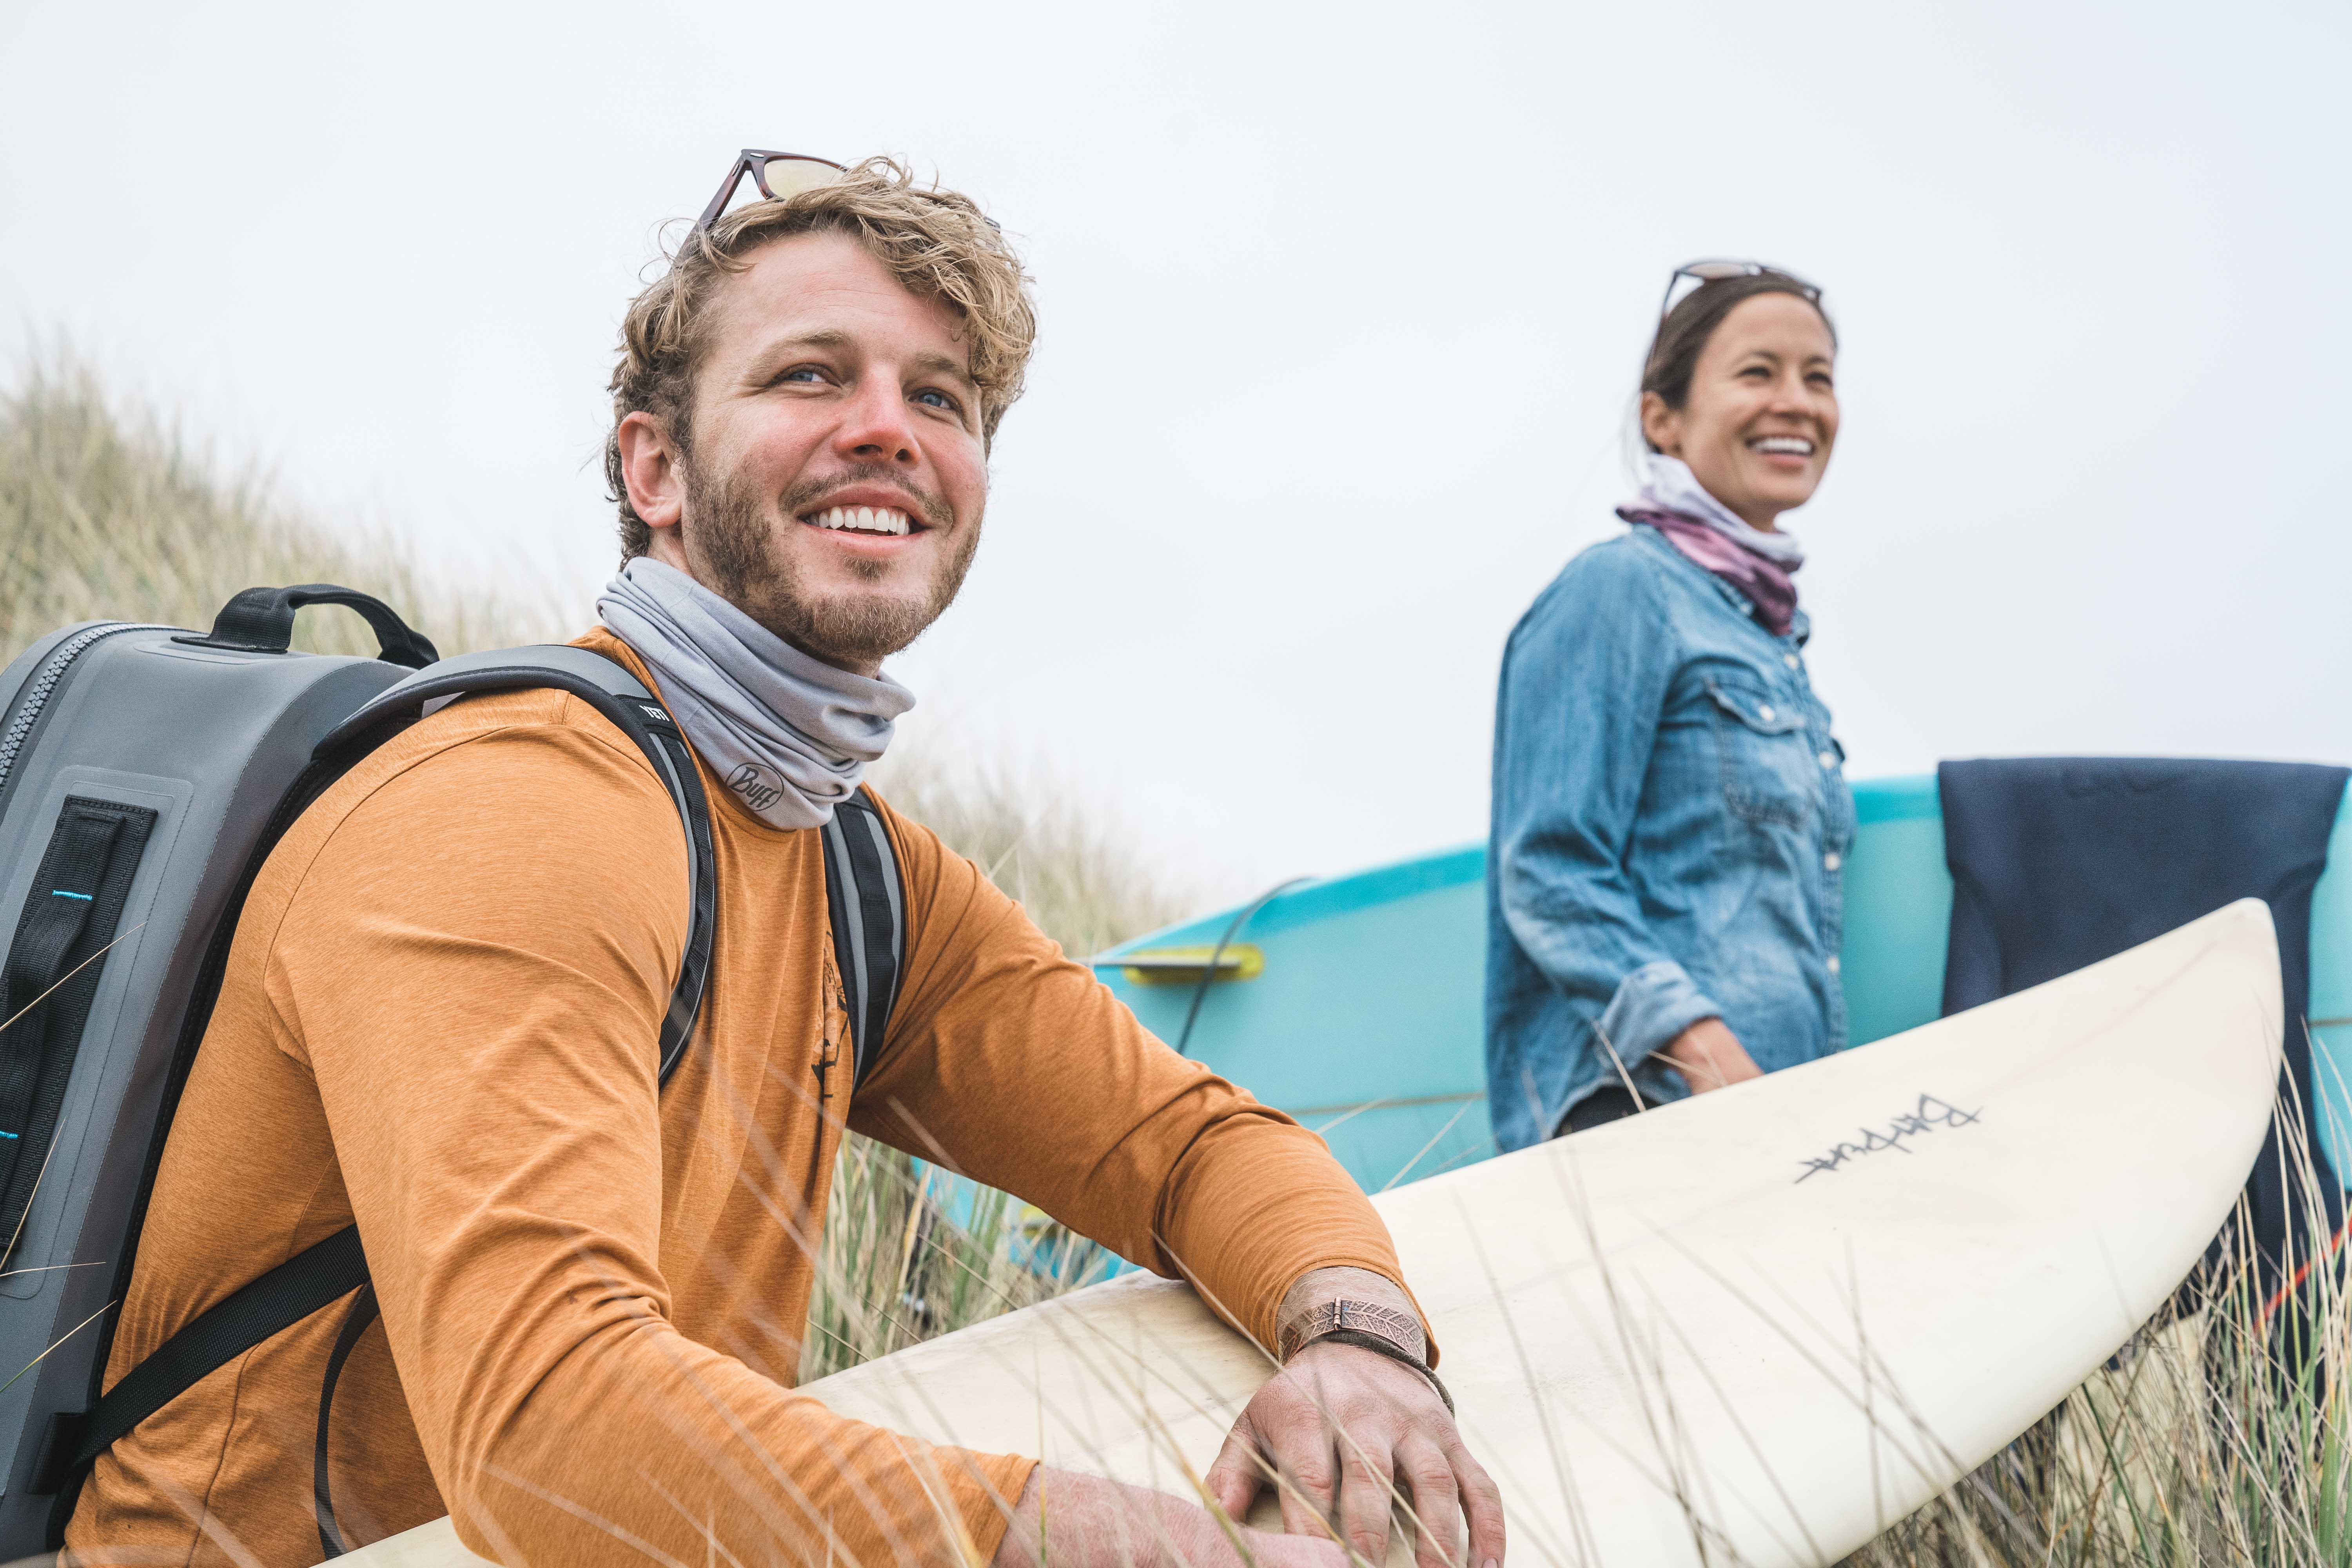 couple arriving at surf spot point at waves